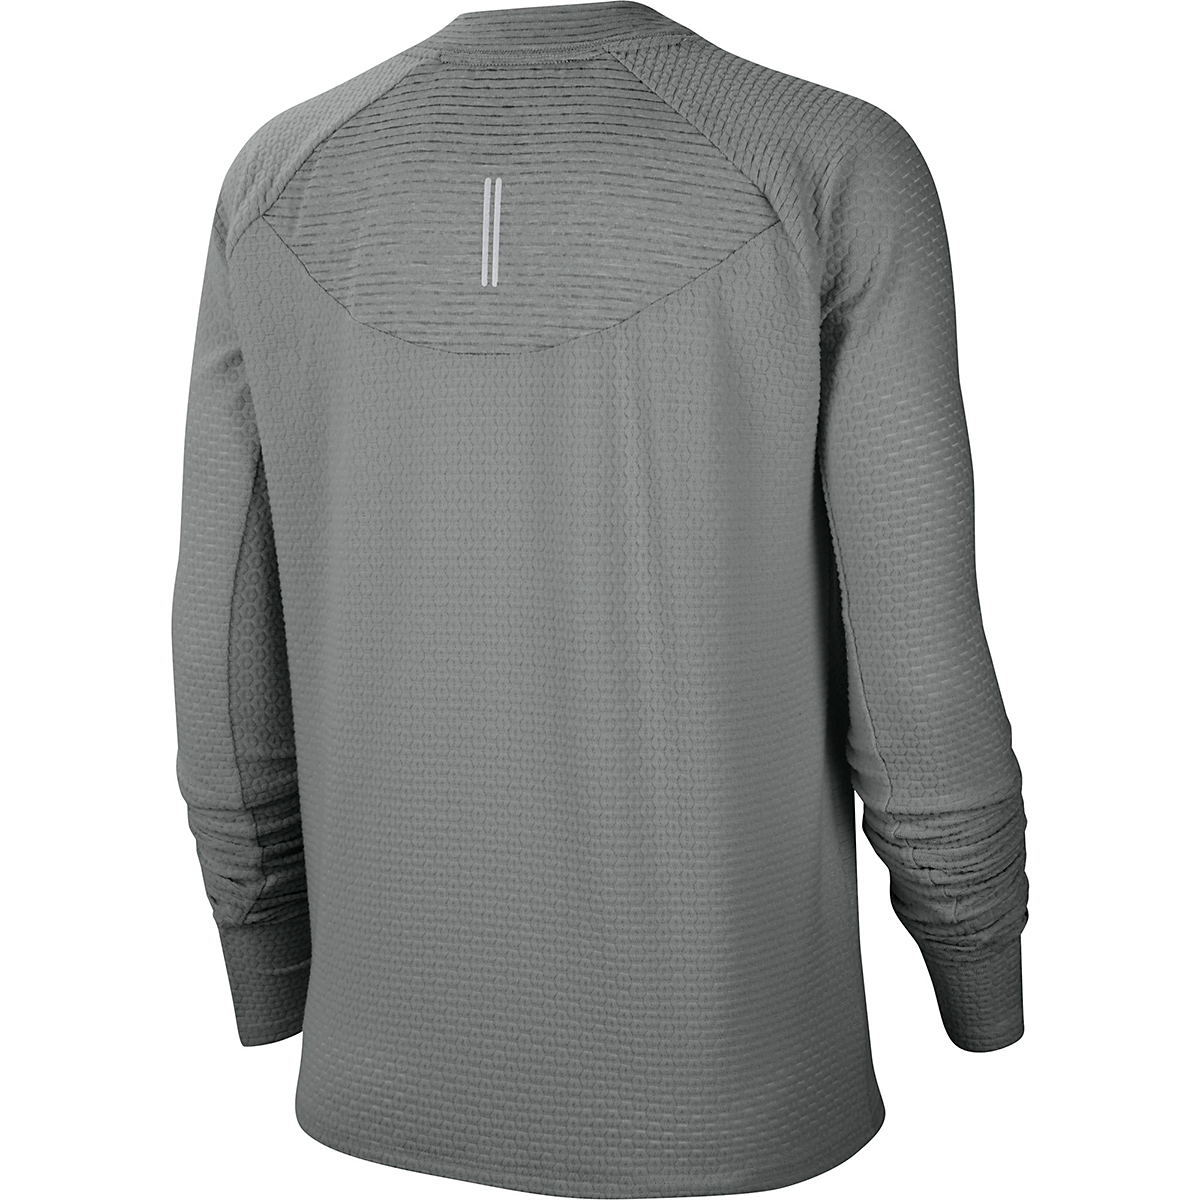 Women's Nike Sphere Crew Long Sleeve Shirt - Color: Particle Grey/Reflective Silver - Size: XS, Particle Grey/Reflective Silver, large, image 2